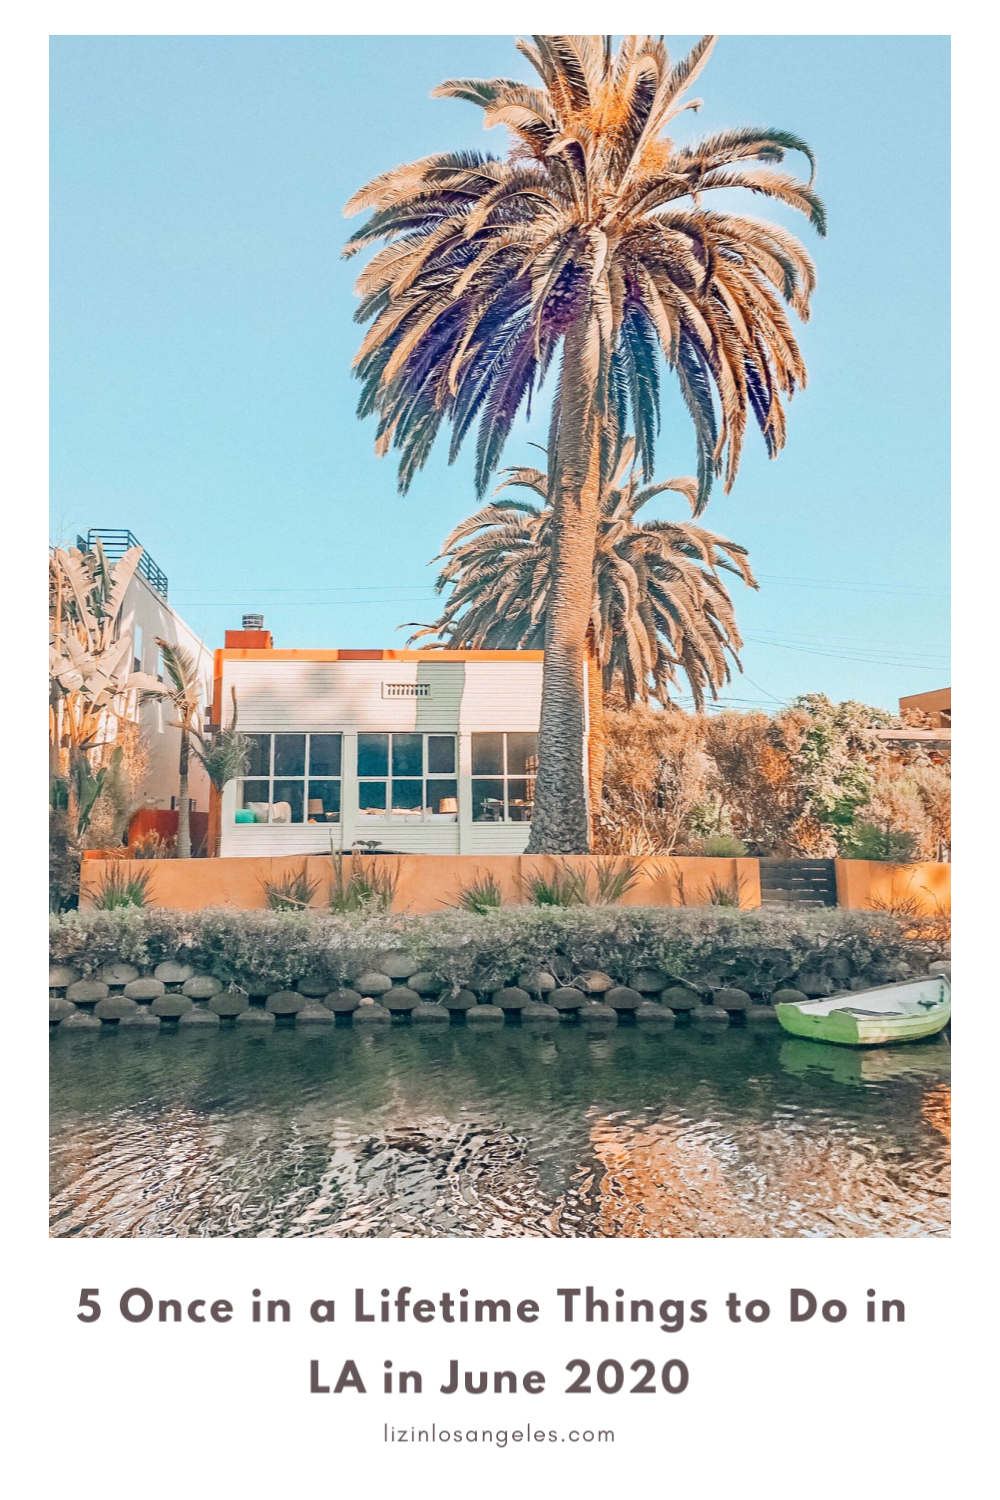 5 Once in a Lifetime Things to Do in LA in June 2020, a blog post by Liz in Los Angeles, Los Angeles Lifestyle Blogger: an image of Venice Canals in Los Angeles